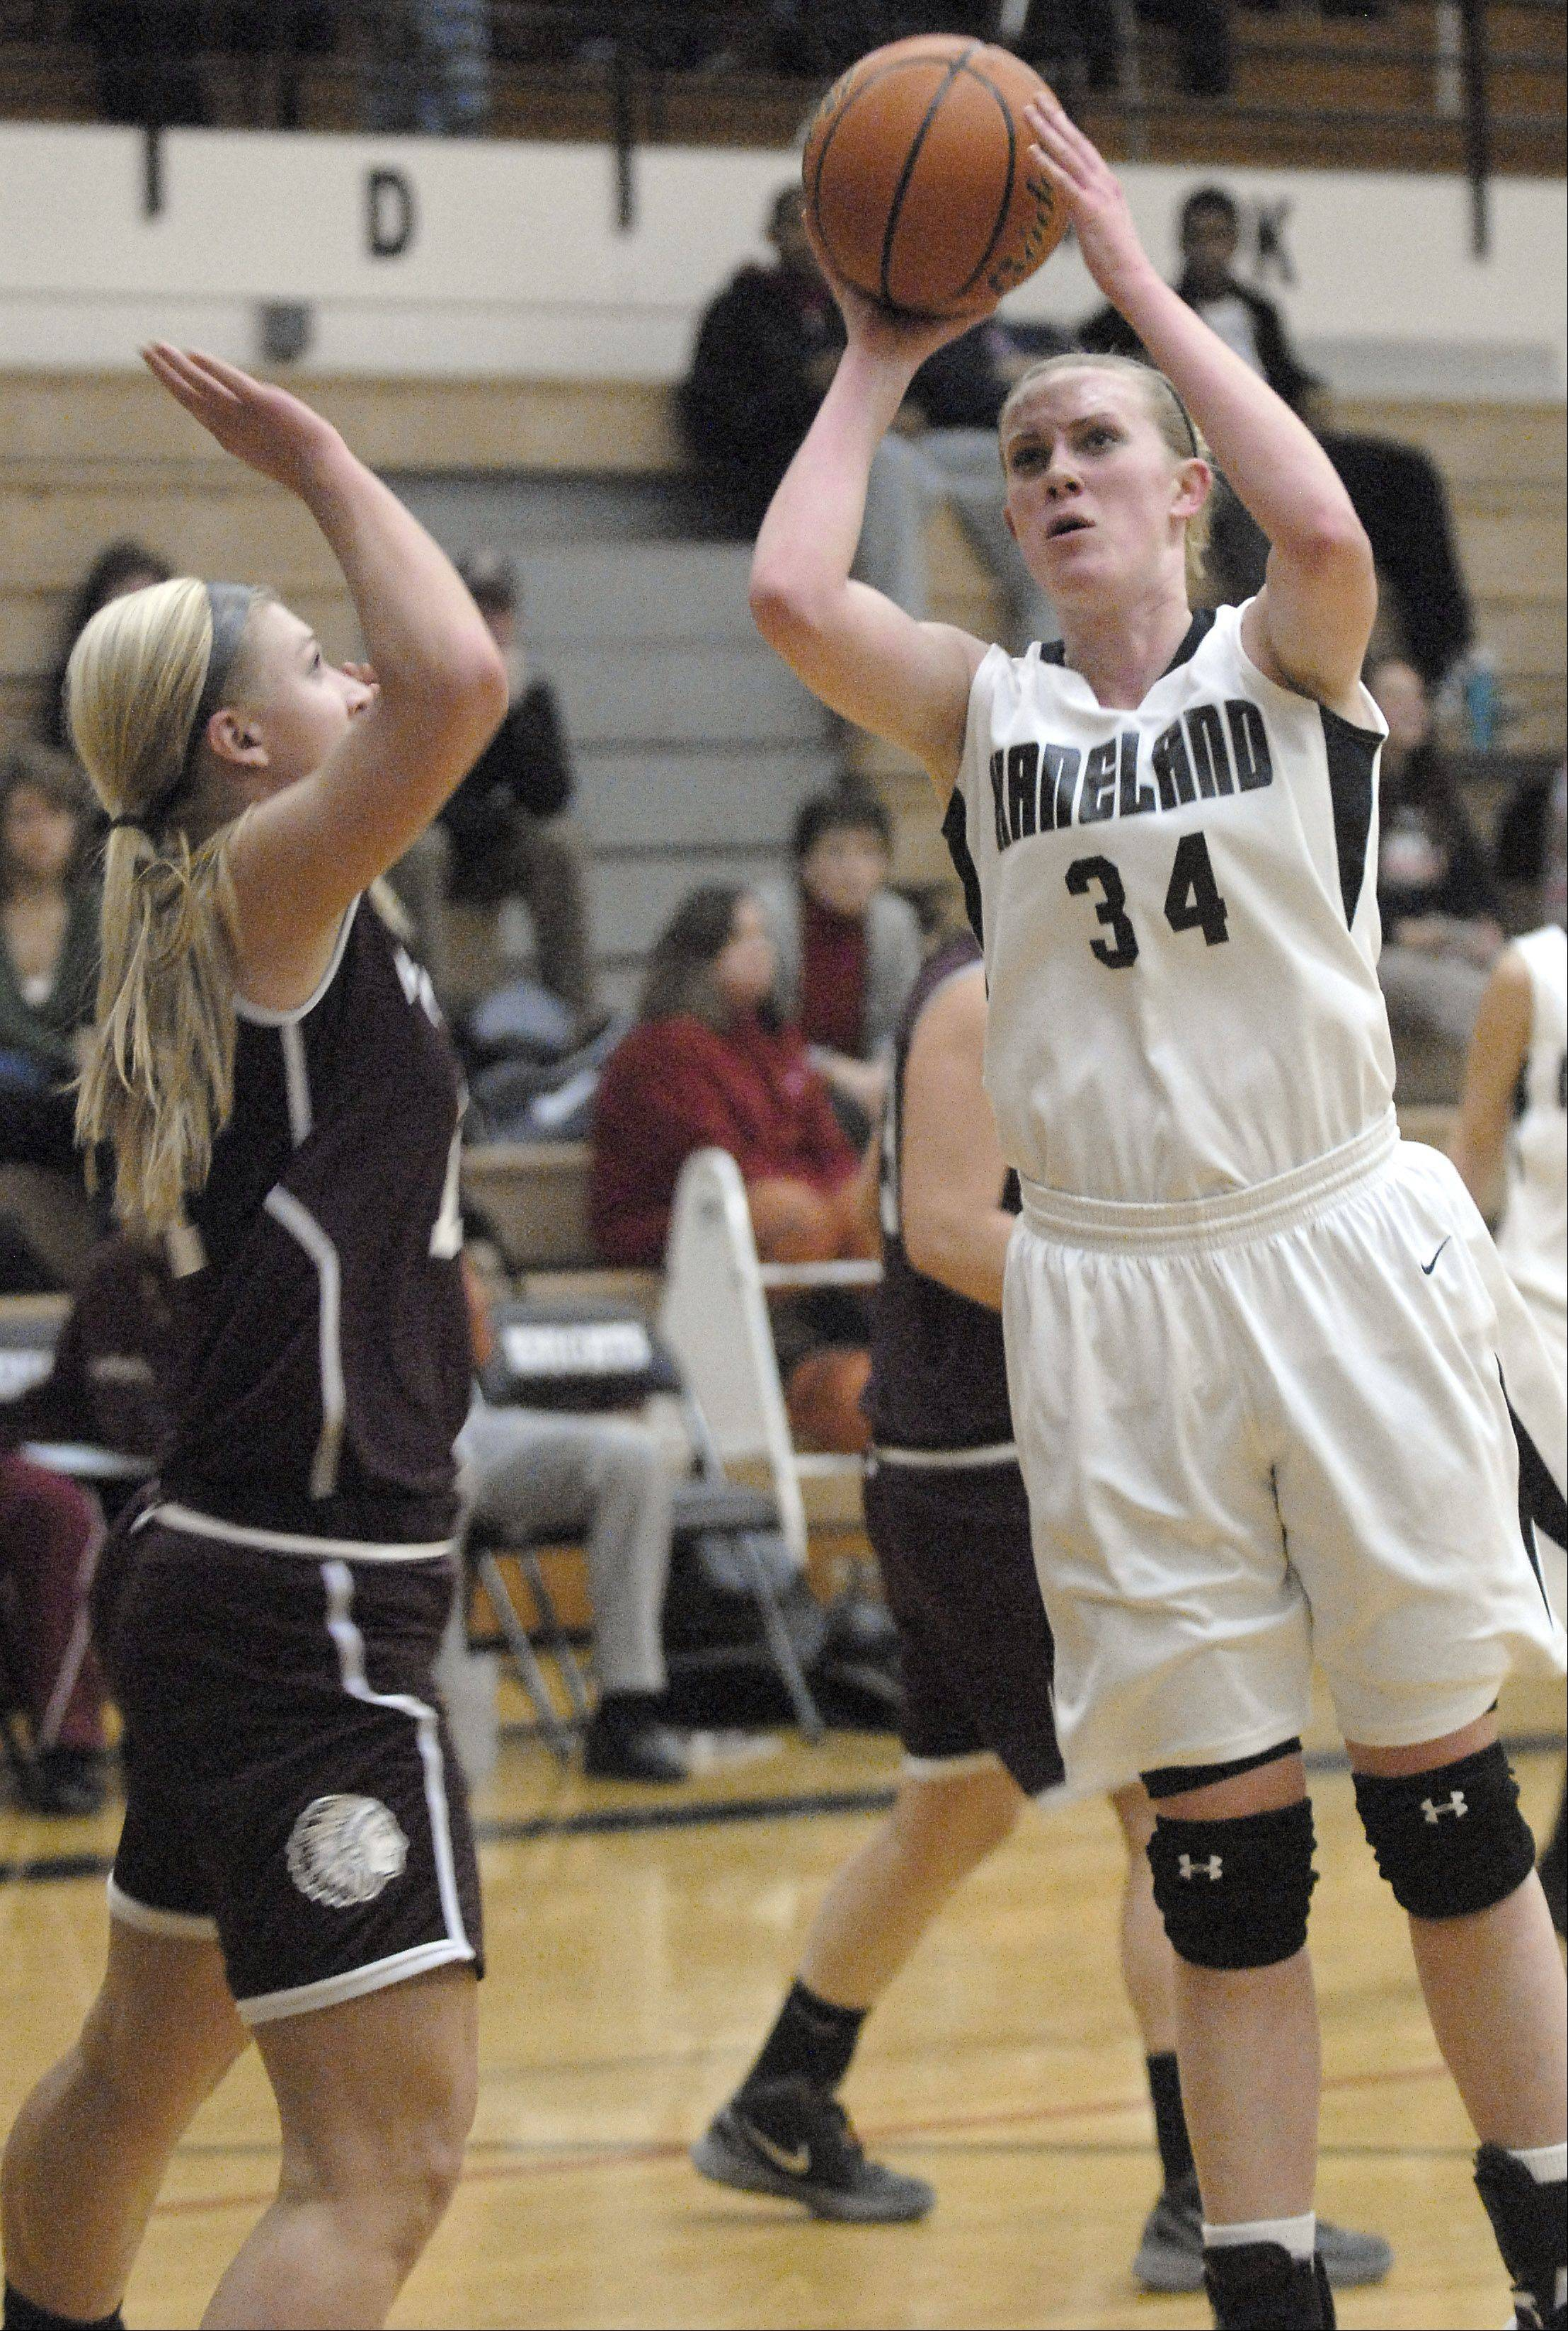 Marengo's Allison Rogutich attempts to block a shot by Kaneland's Kelly Evers in the first quarter.